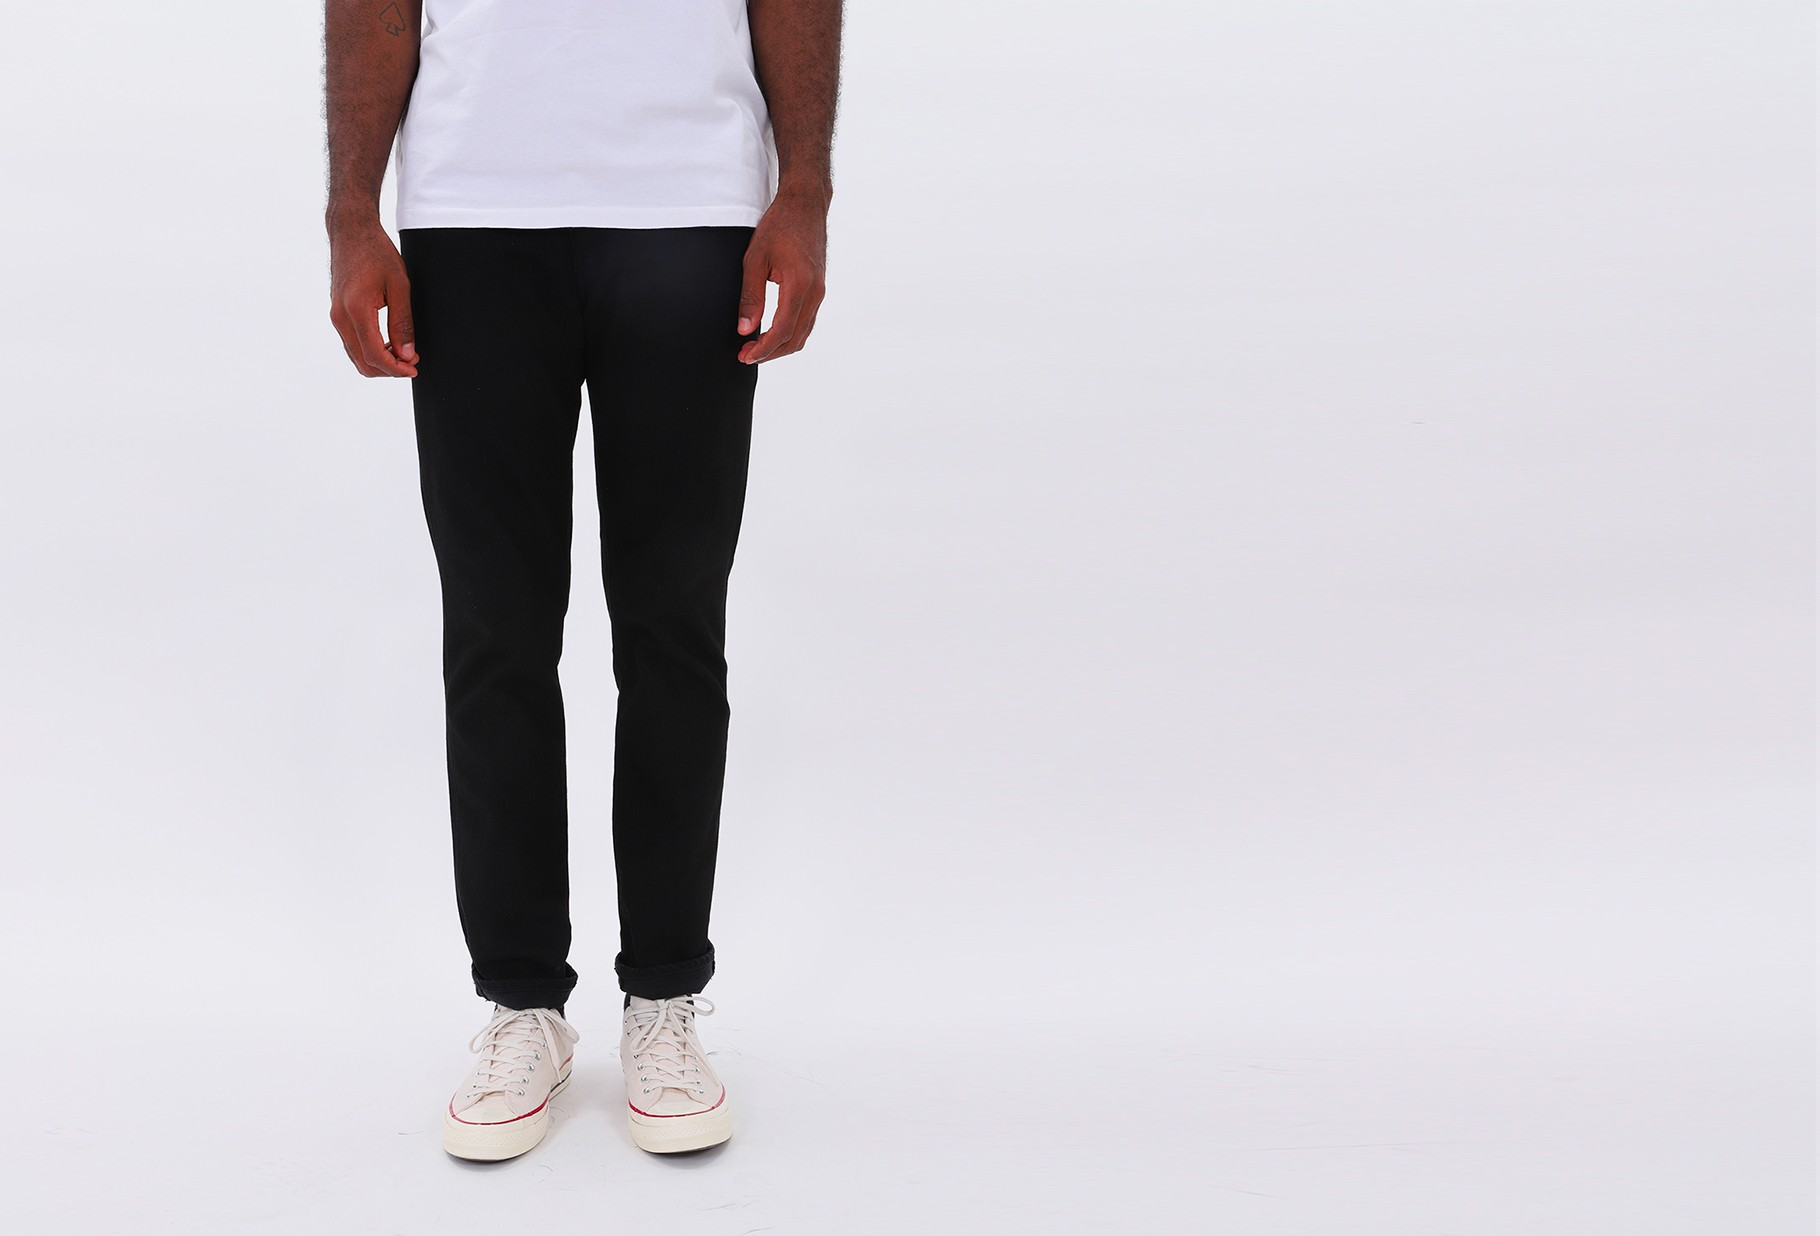 LEVIS MADE CRAFTED / Lmc 511 lmc black Rinsed